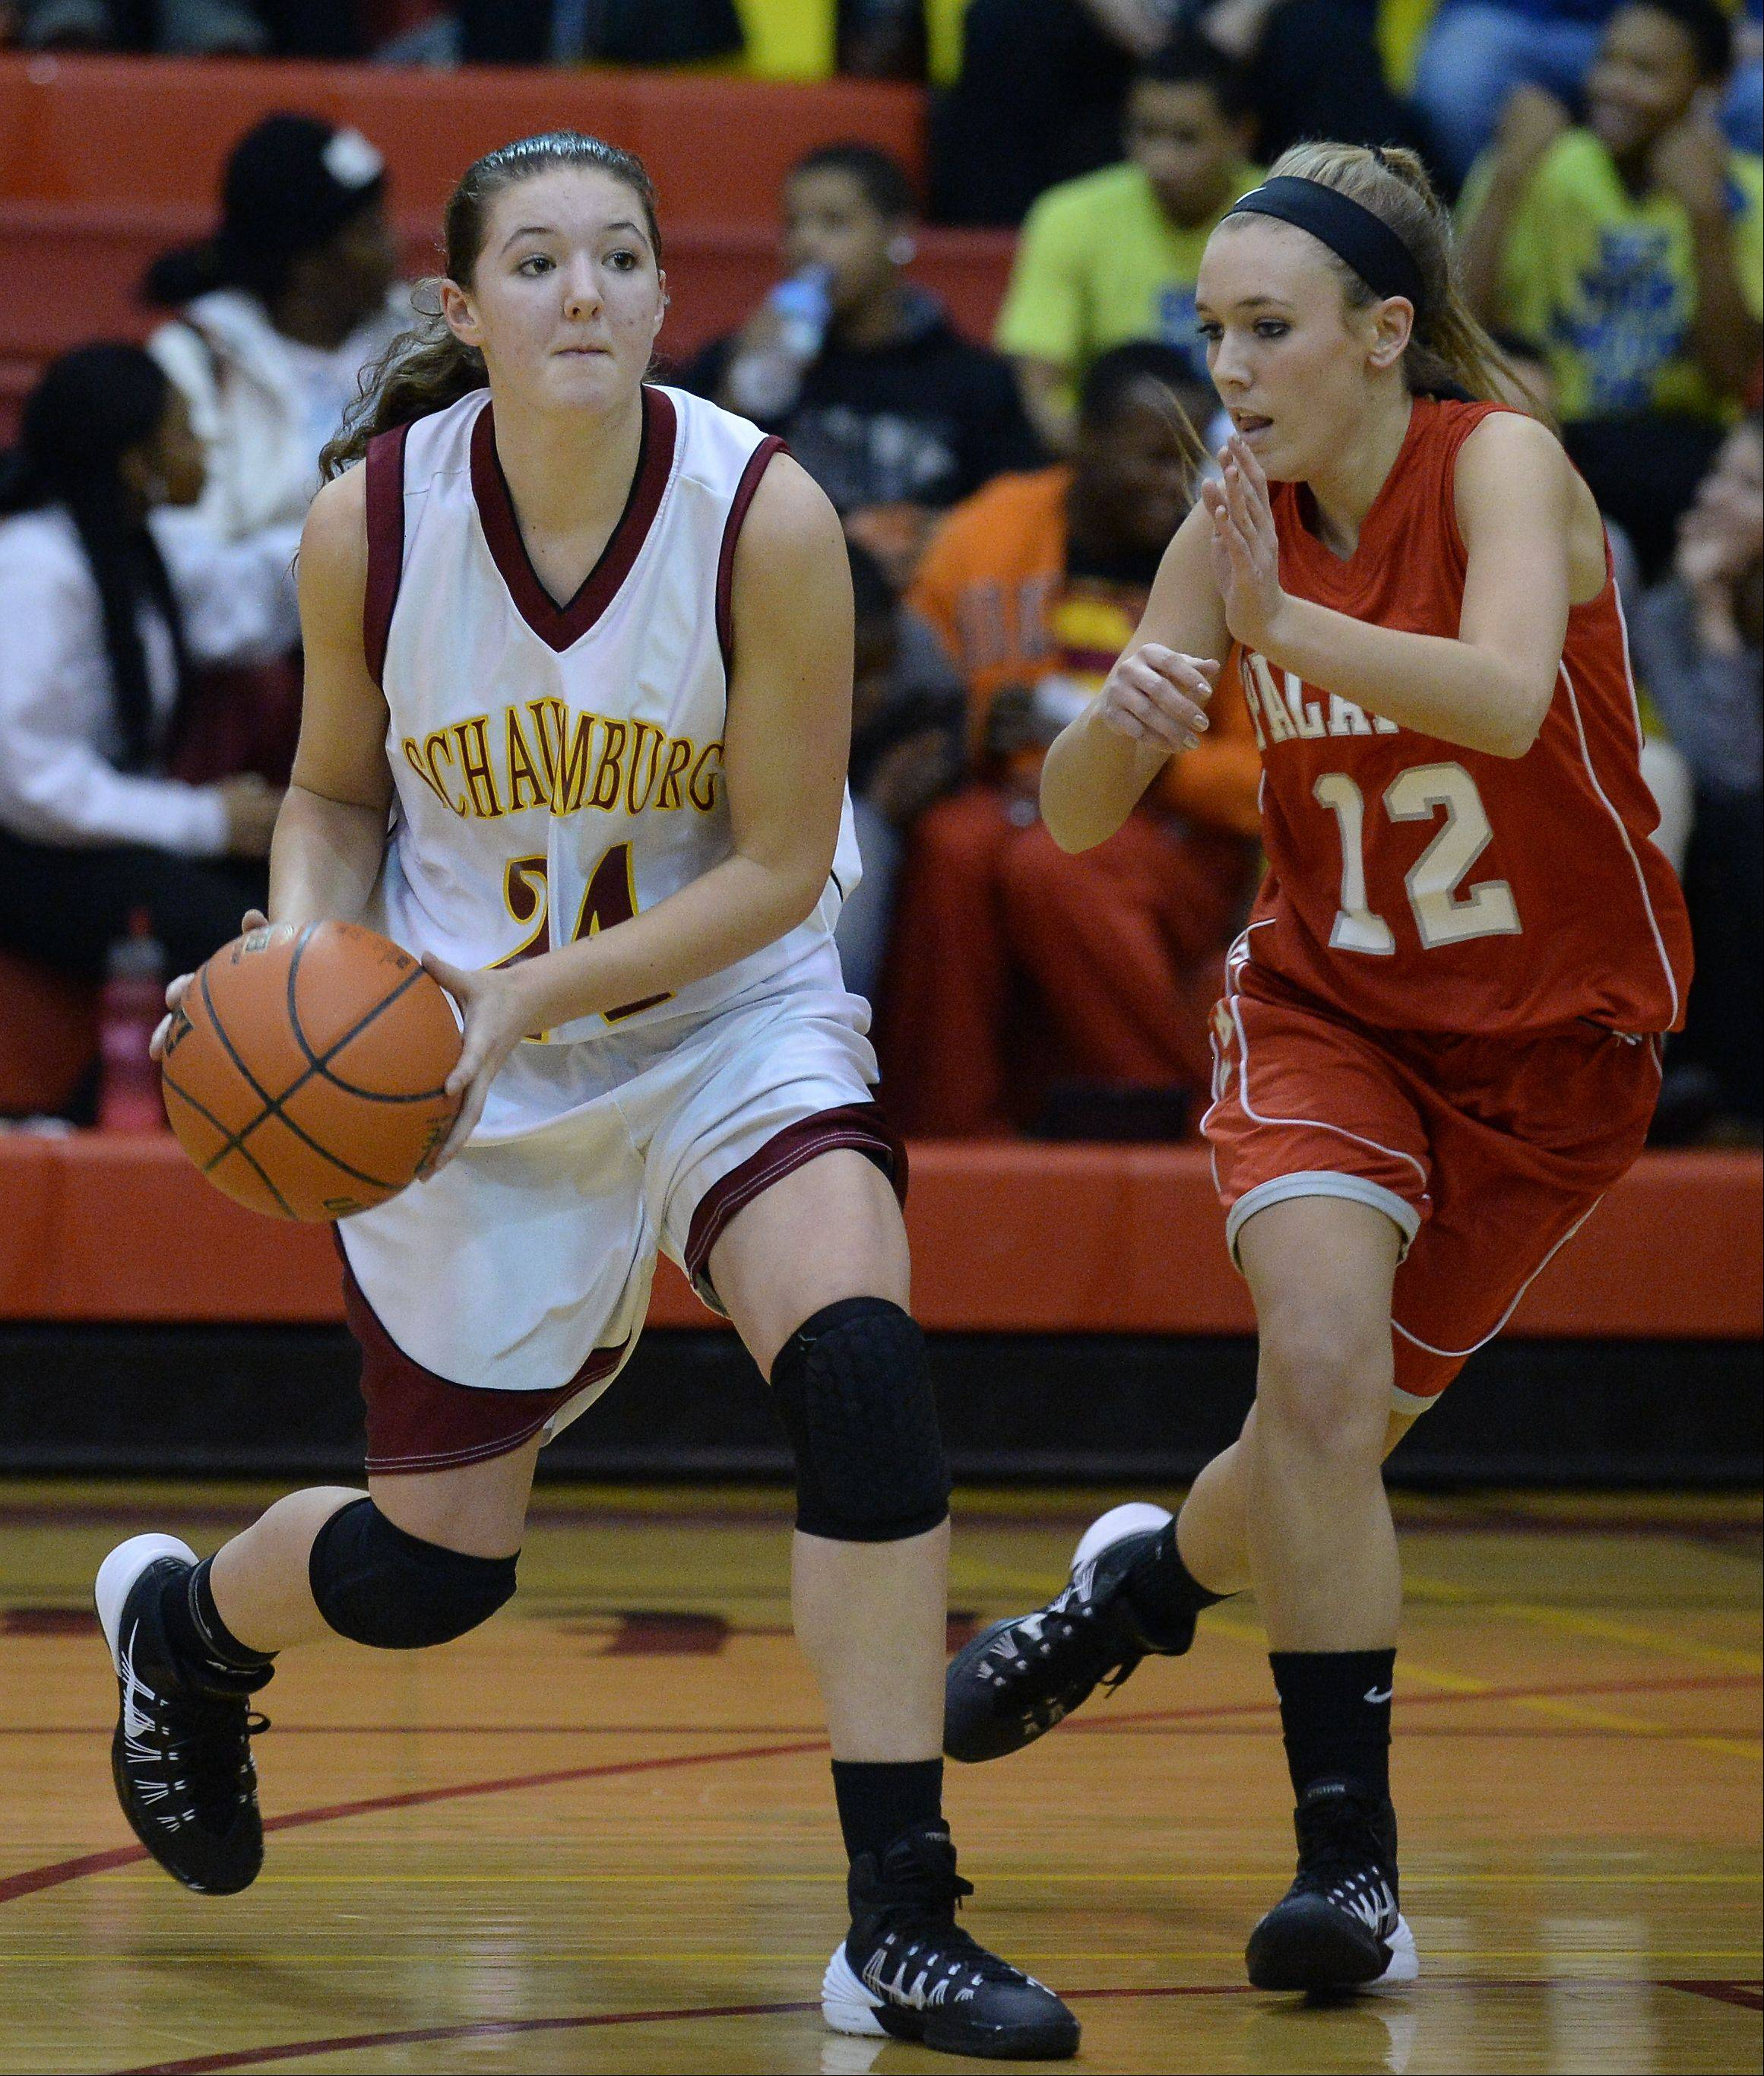 Photos from the Schaumburg vs. Palatine girls basketball game on Friday, December 13th in Schaumburg.